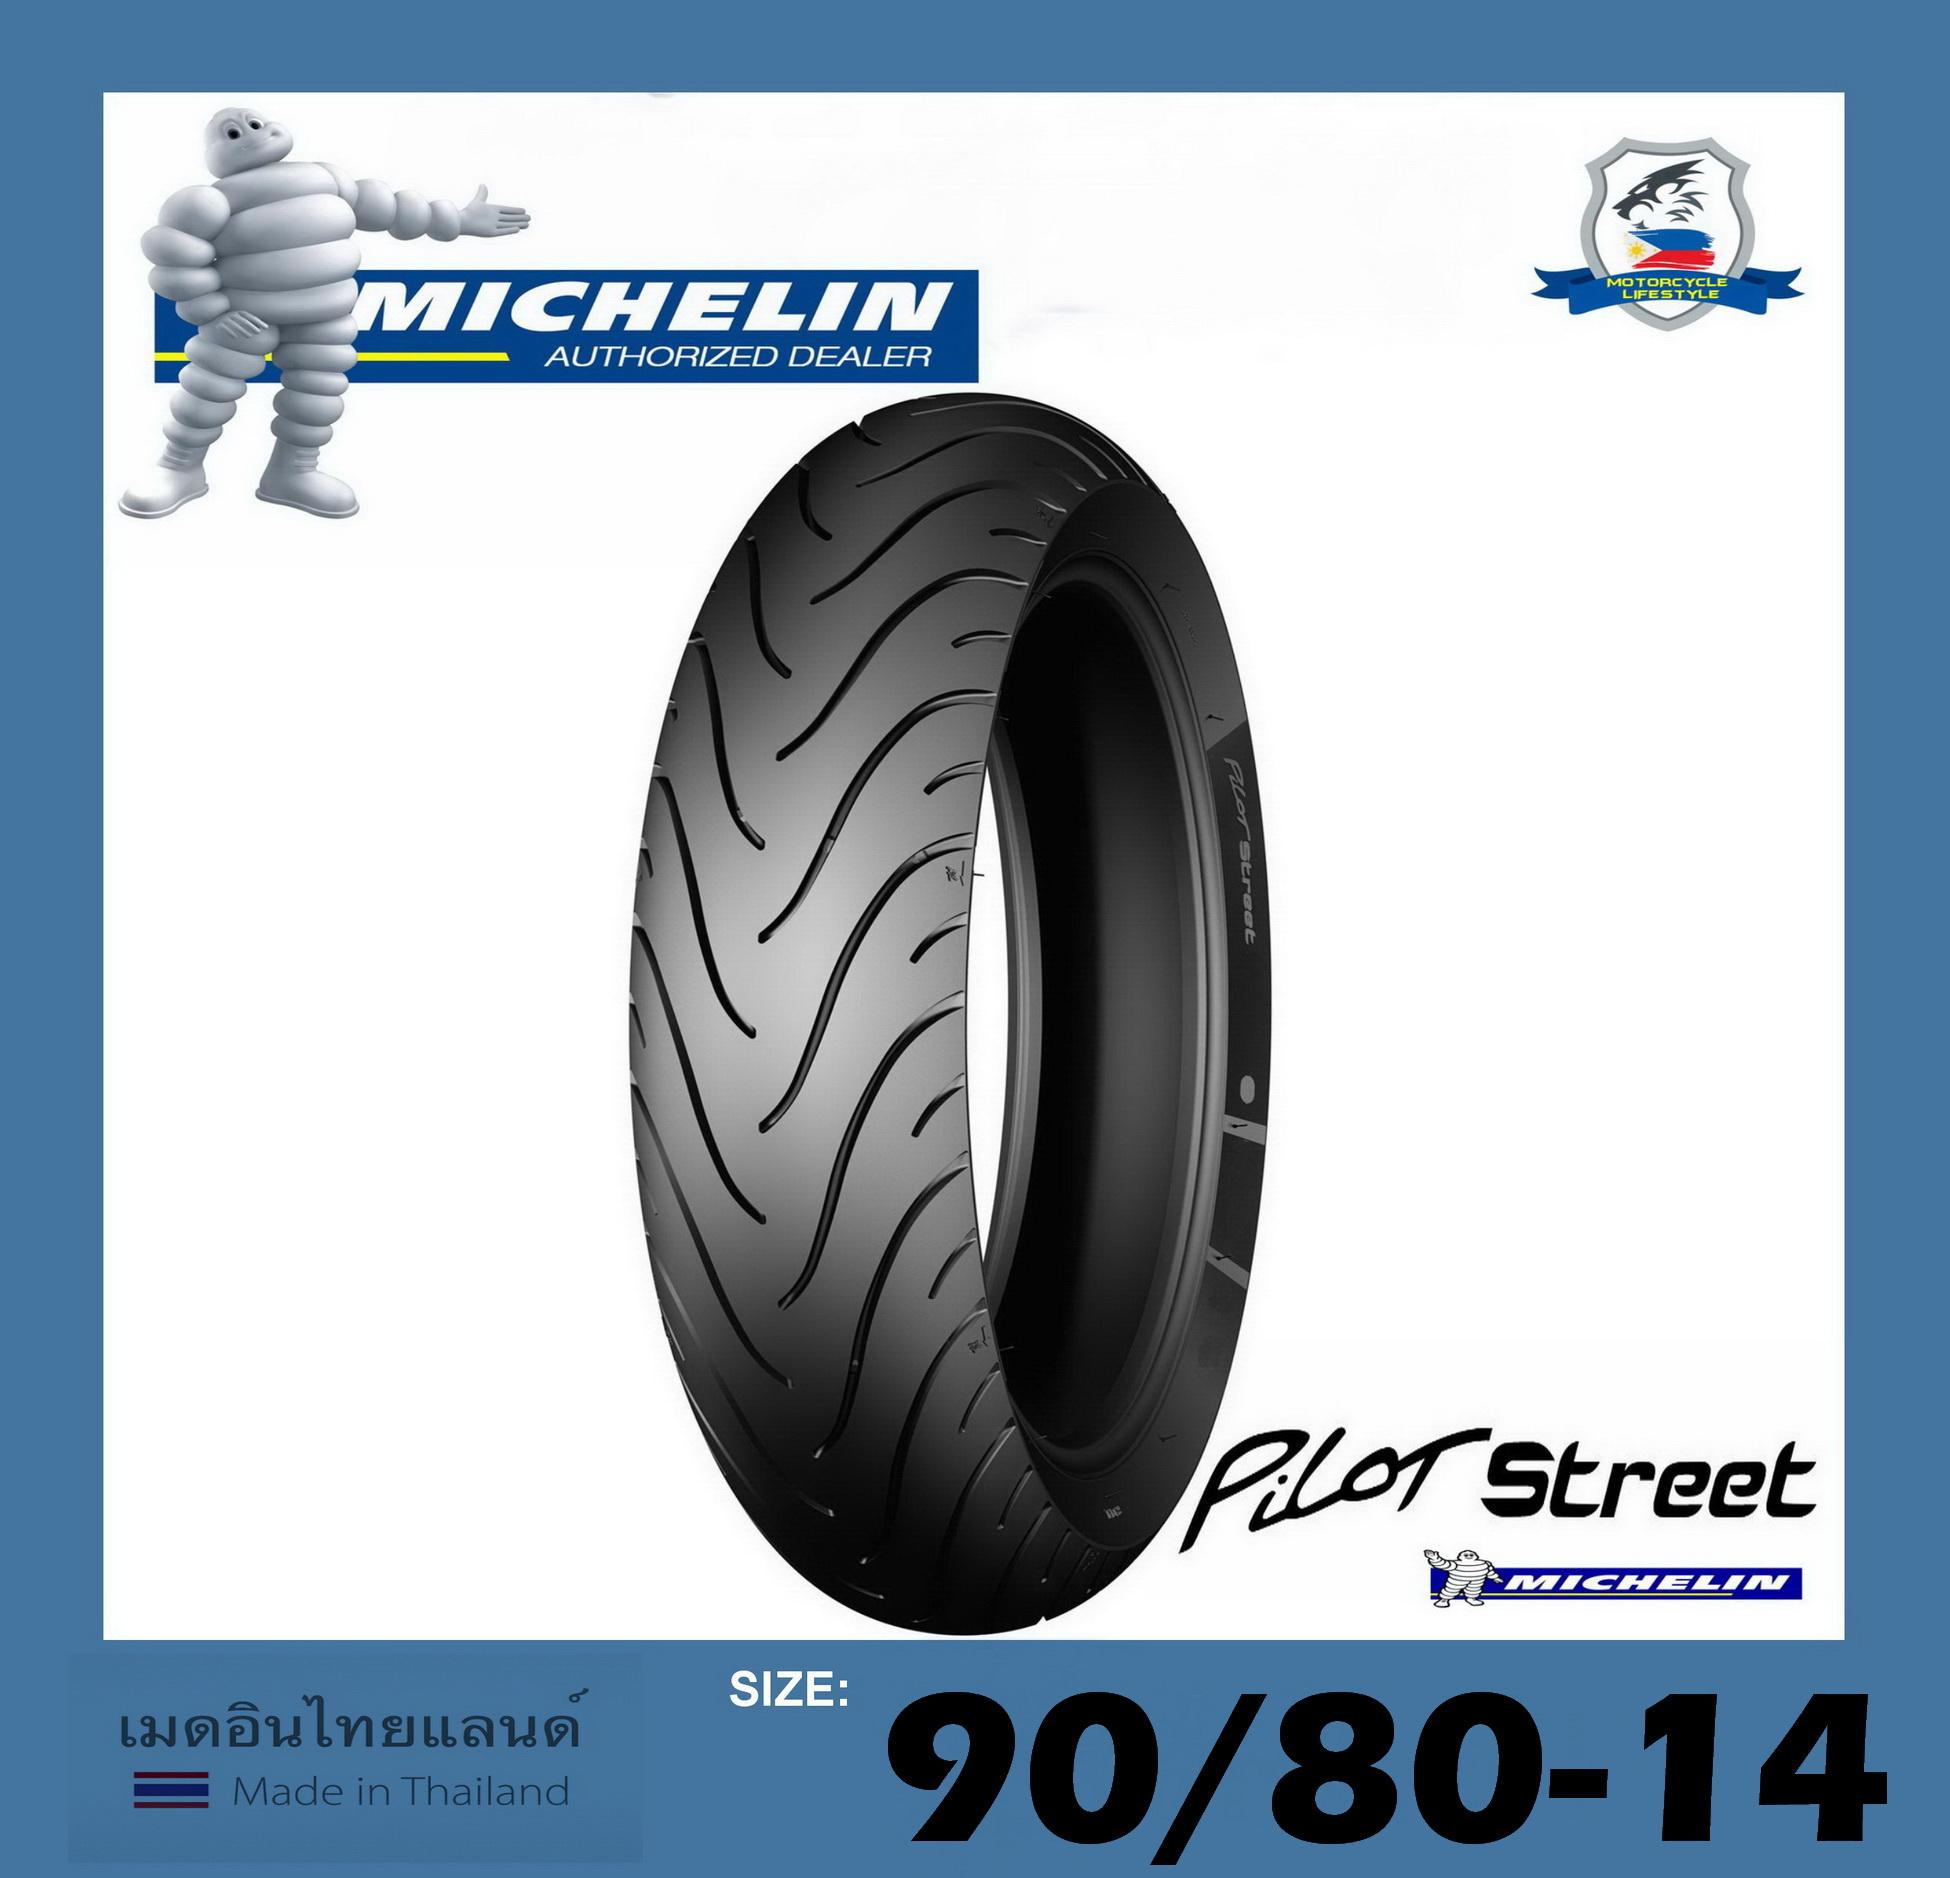 Buy Michelin Top Products Online At Best Price